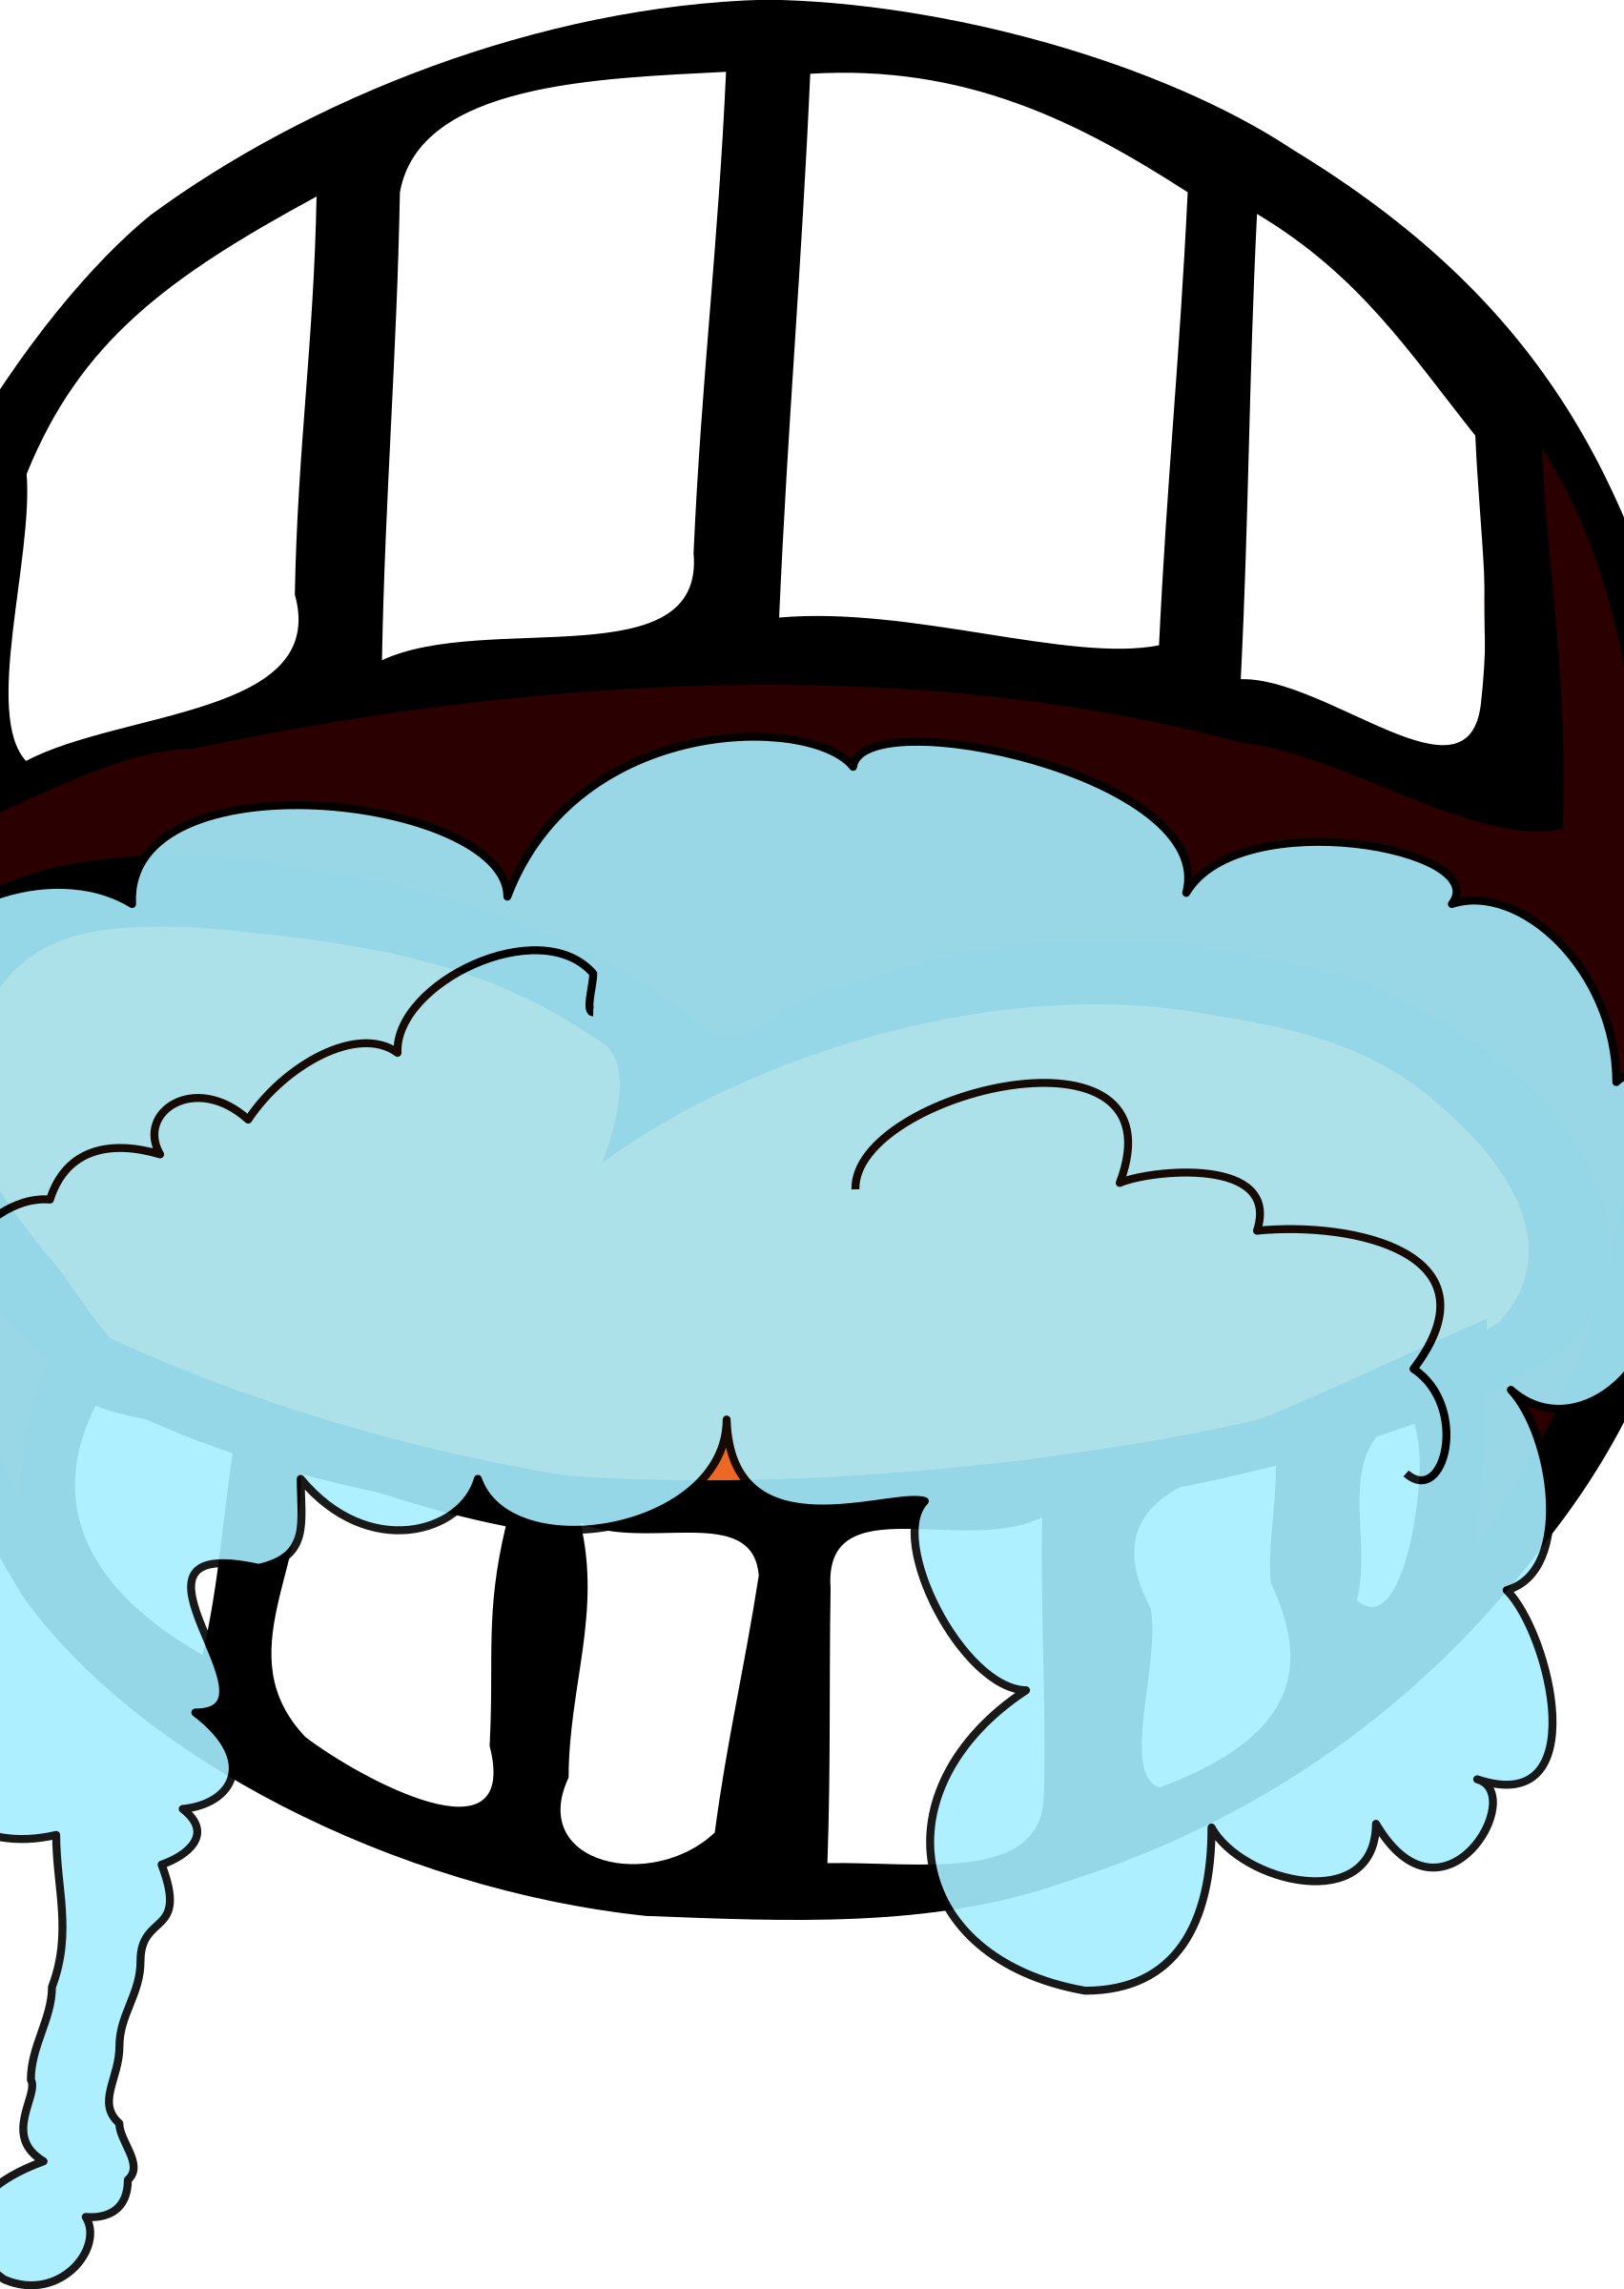 clip free library Foaming big image png. Brush clipart mouth